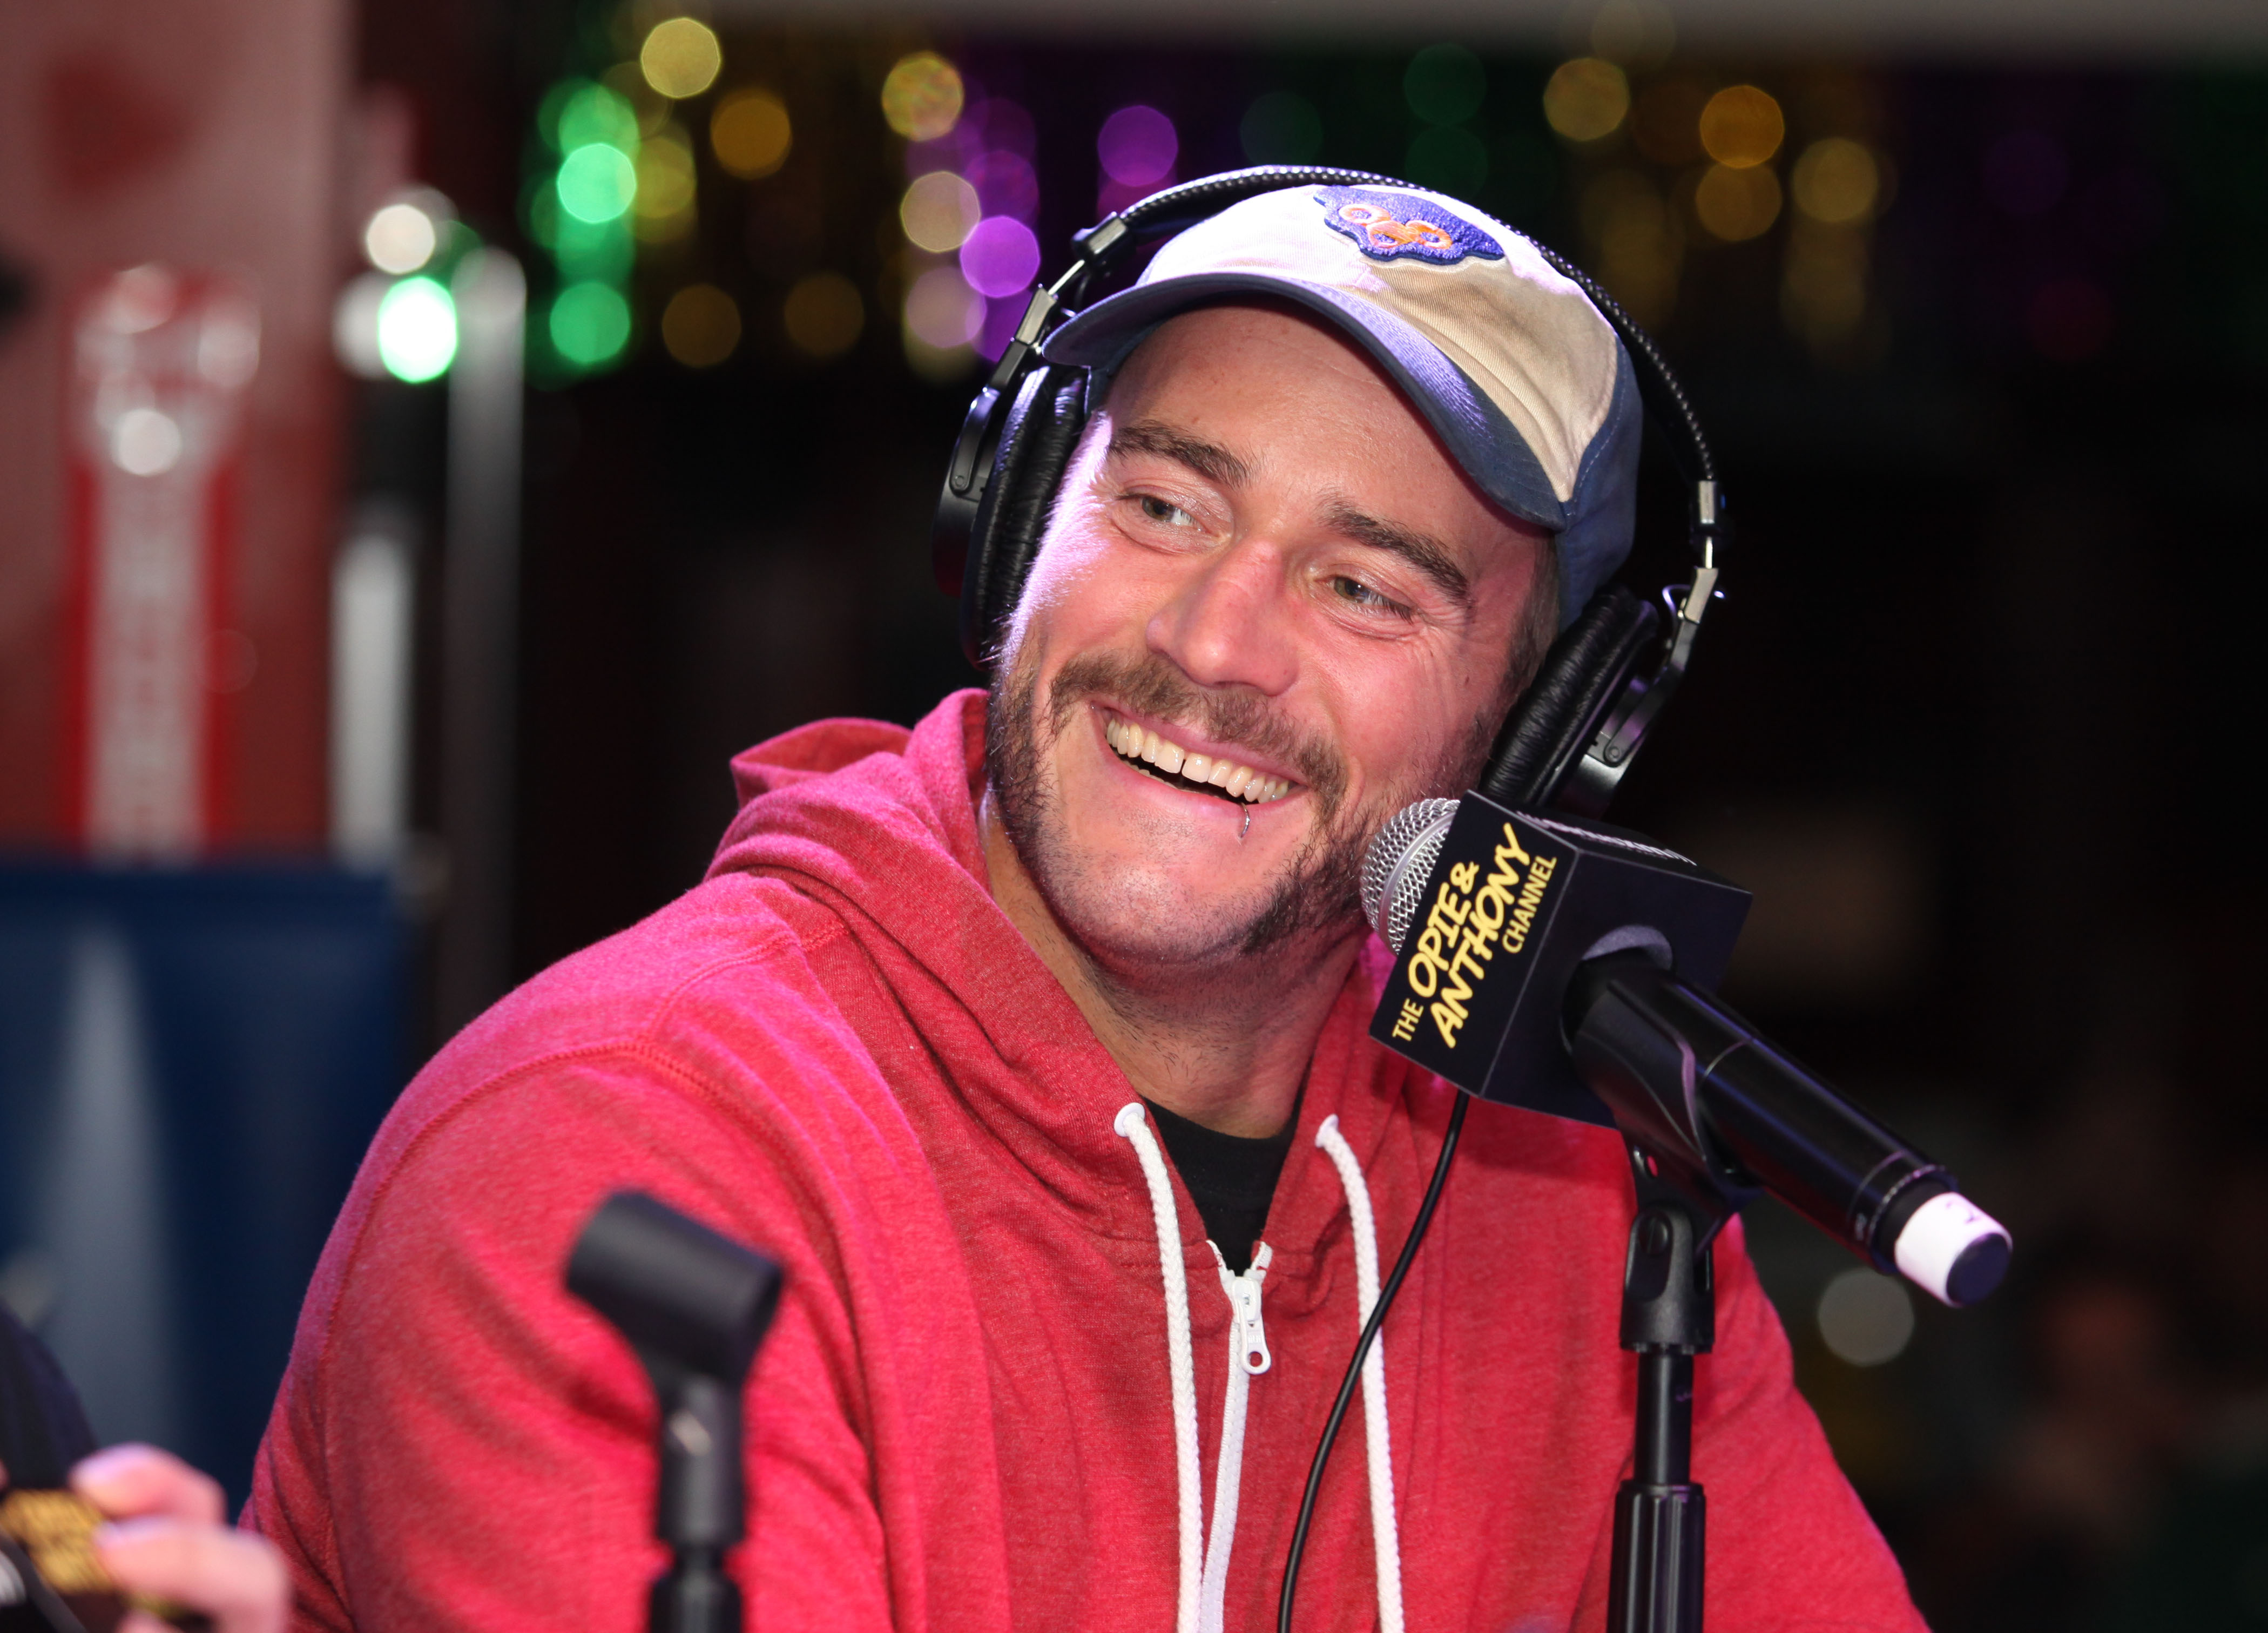 SiriusXM's Opie & Anthony Special Live Broadcast Event In Chicago